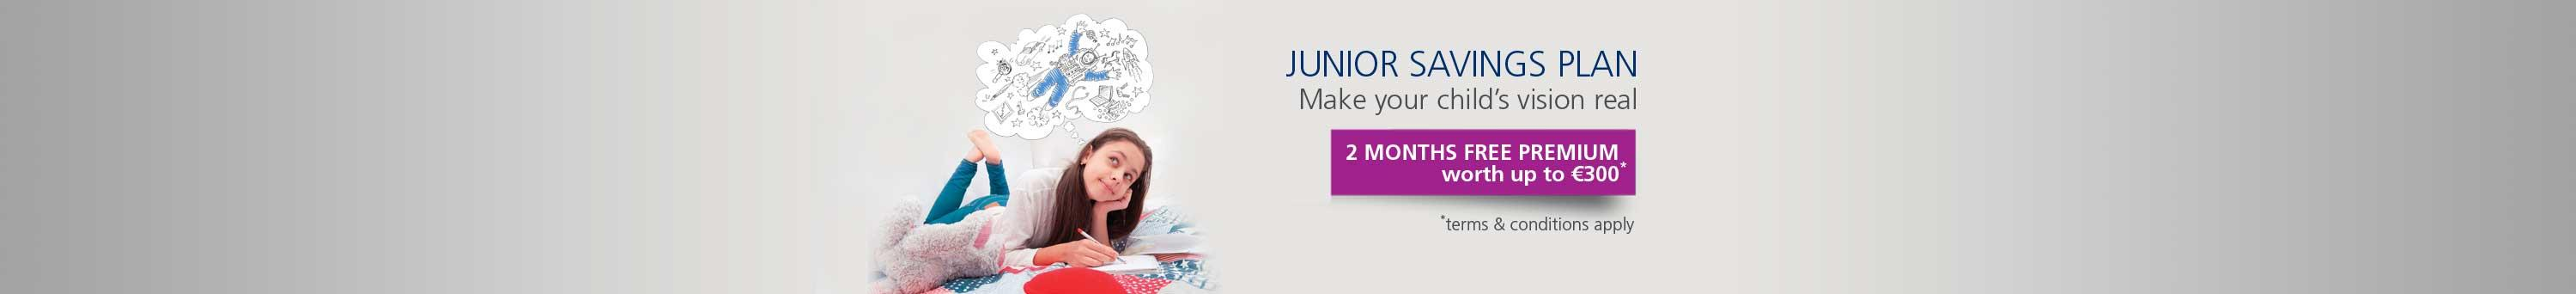 Junior Savings Offer